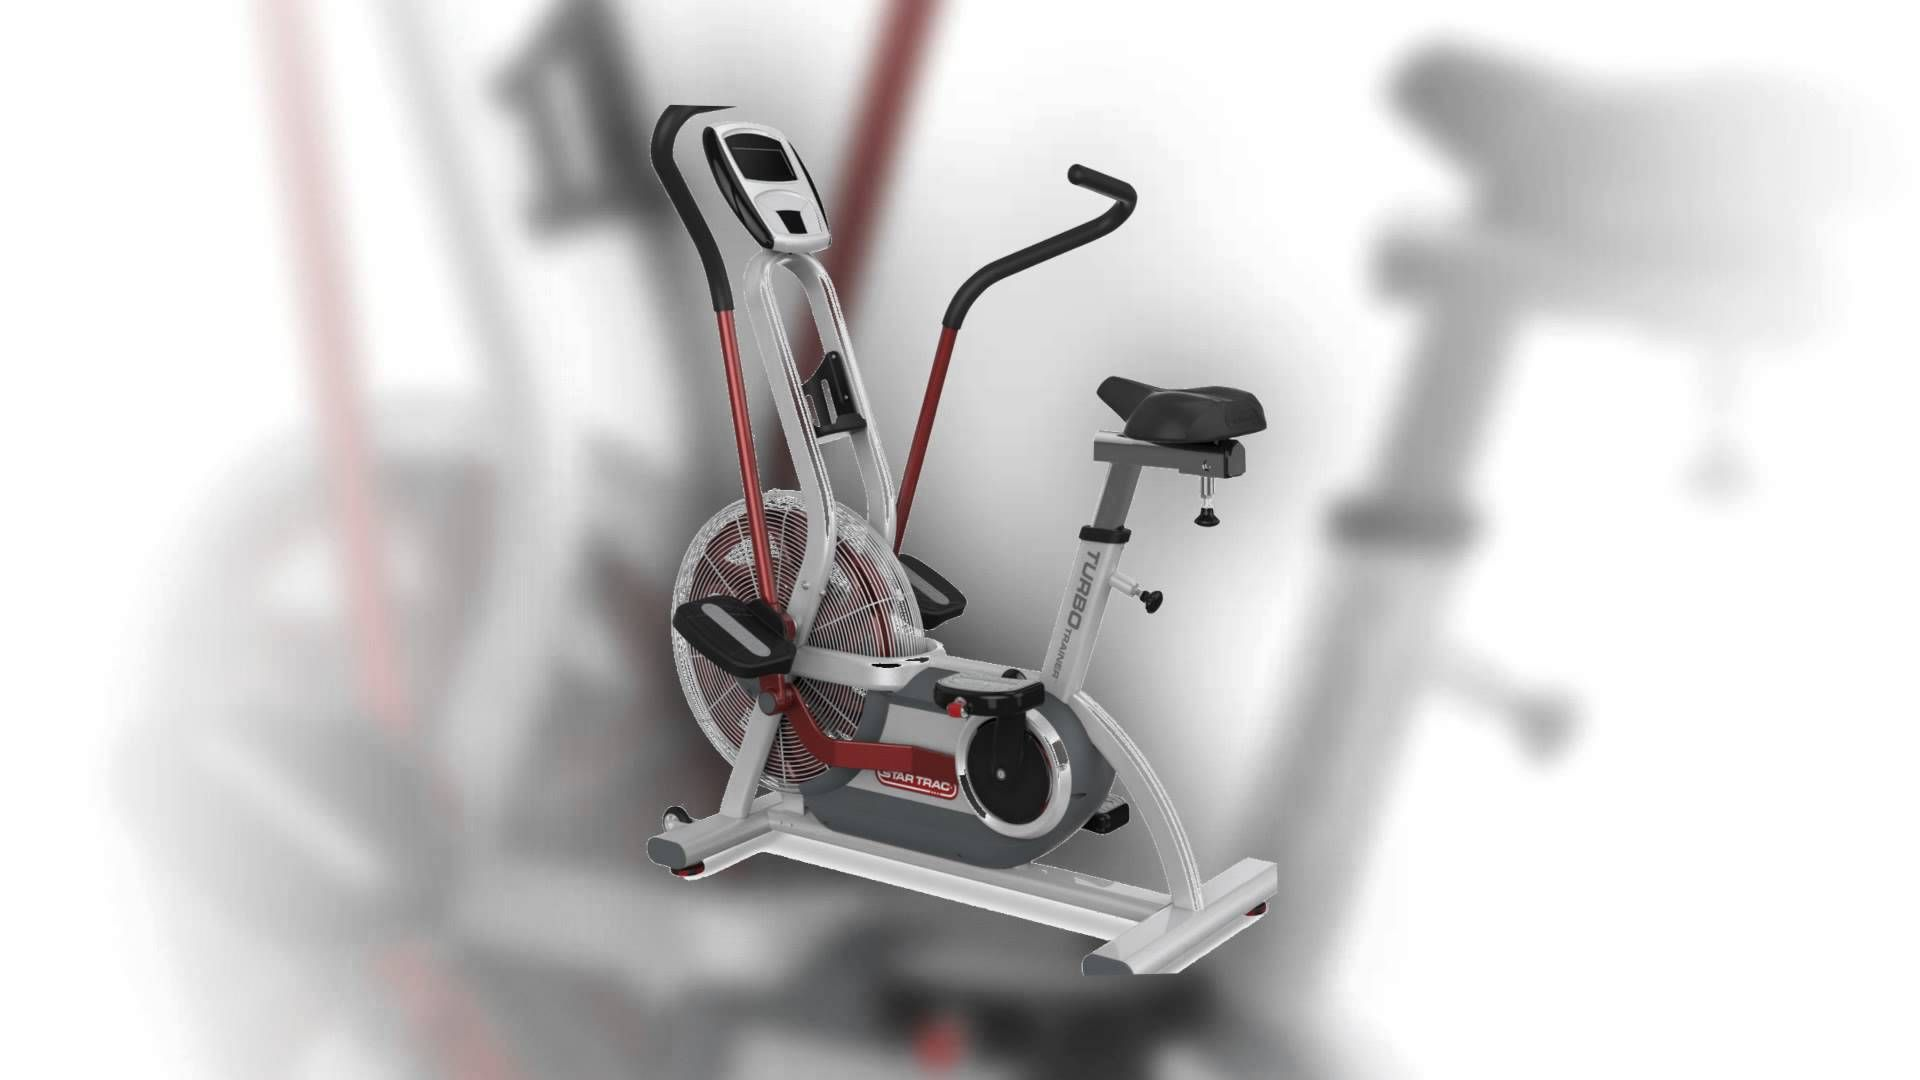 Star Trac Turbo Trainer Air Bike Review Discount Online Fitness